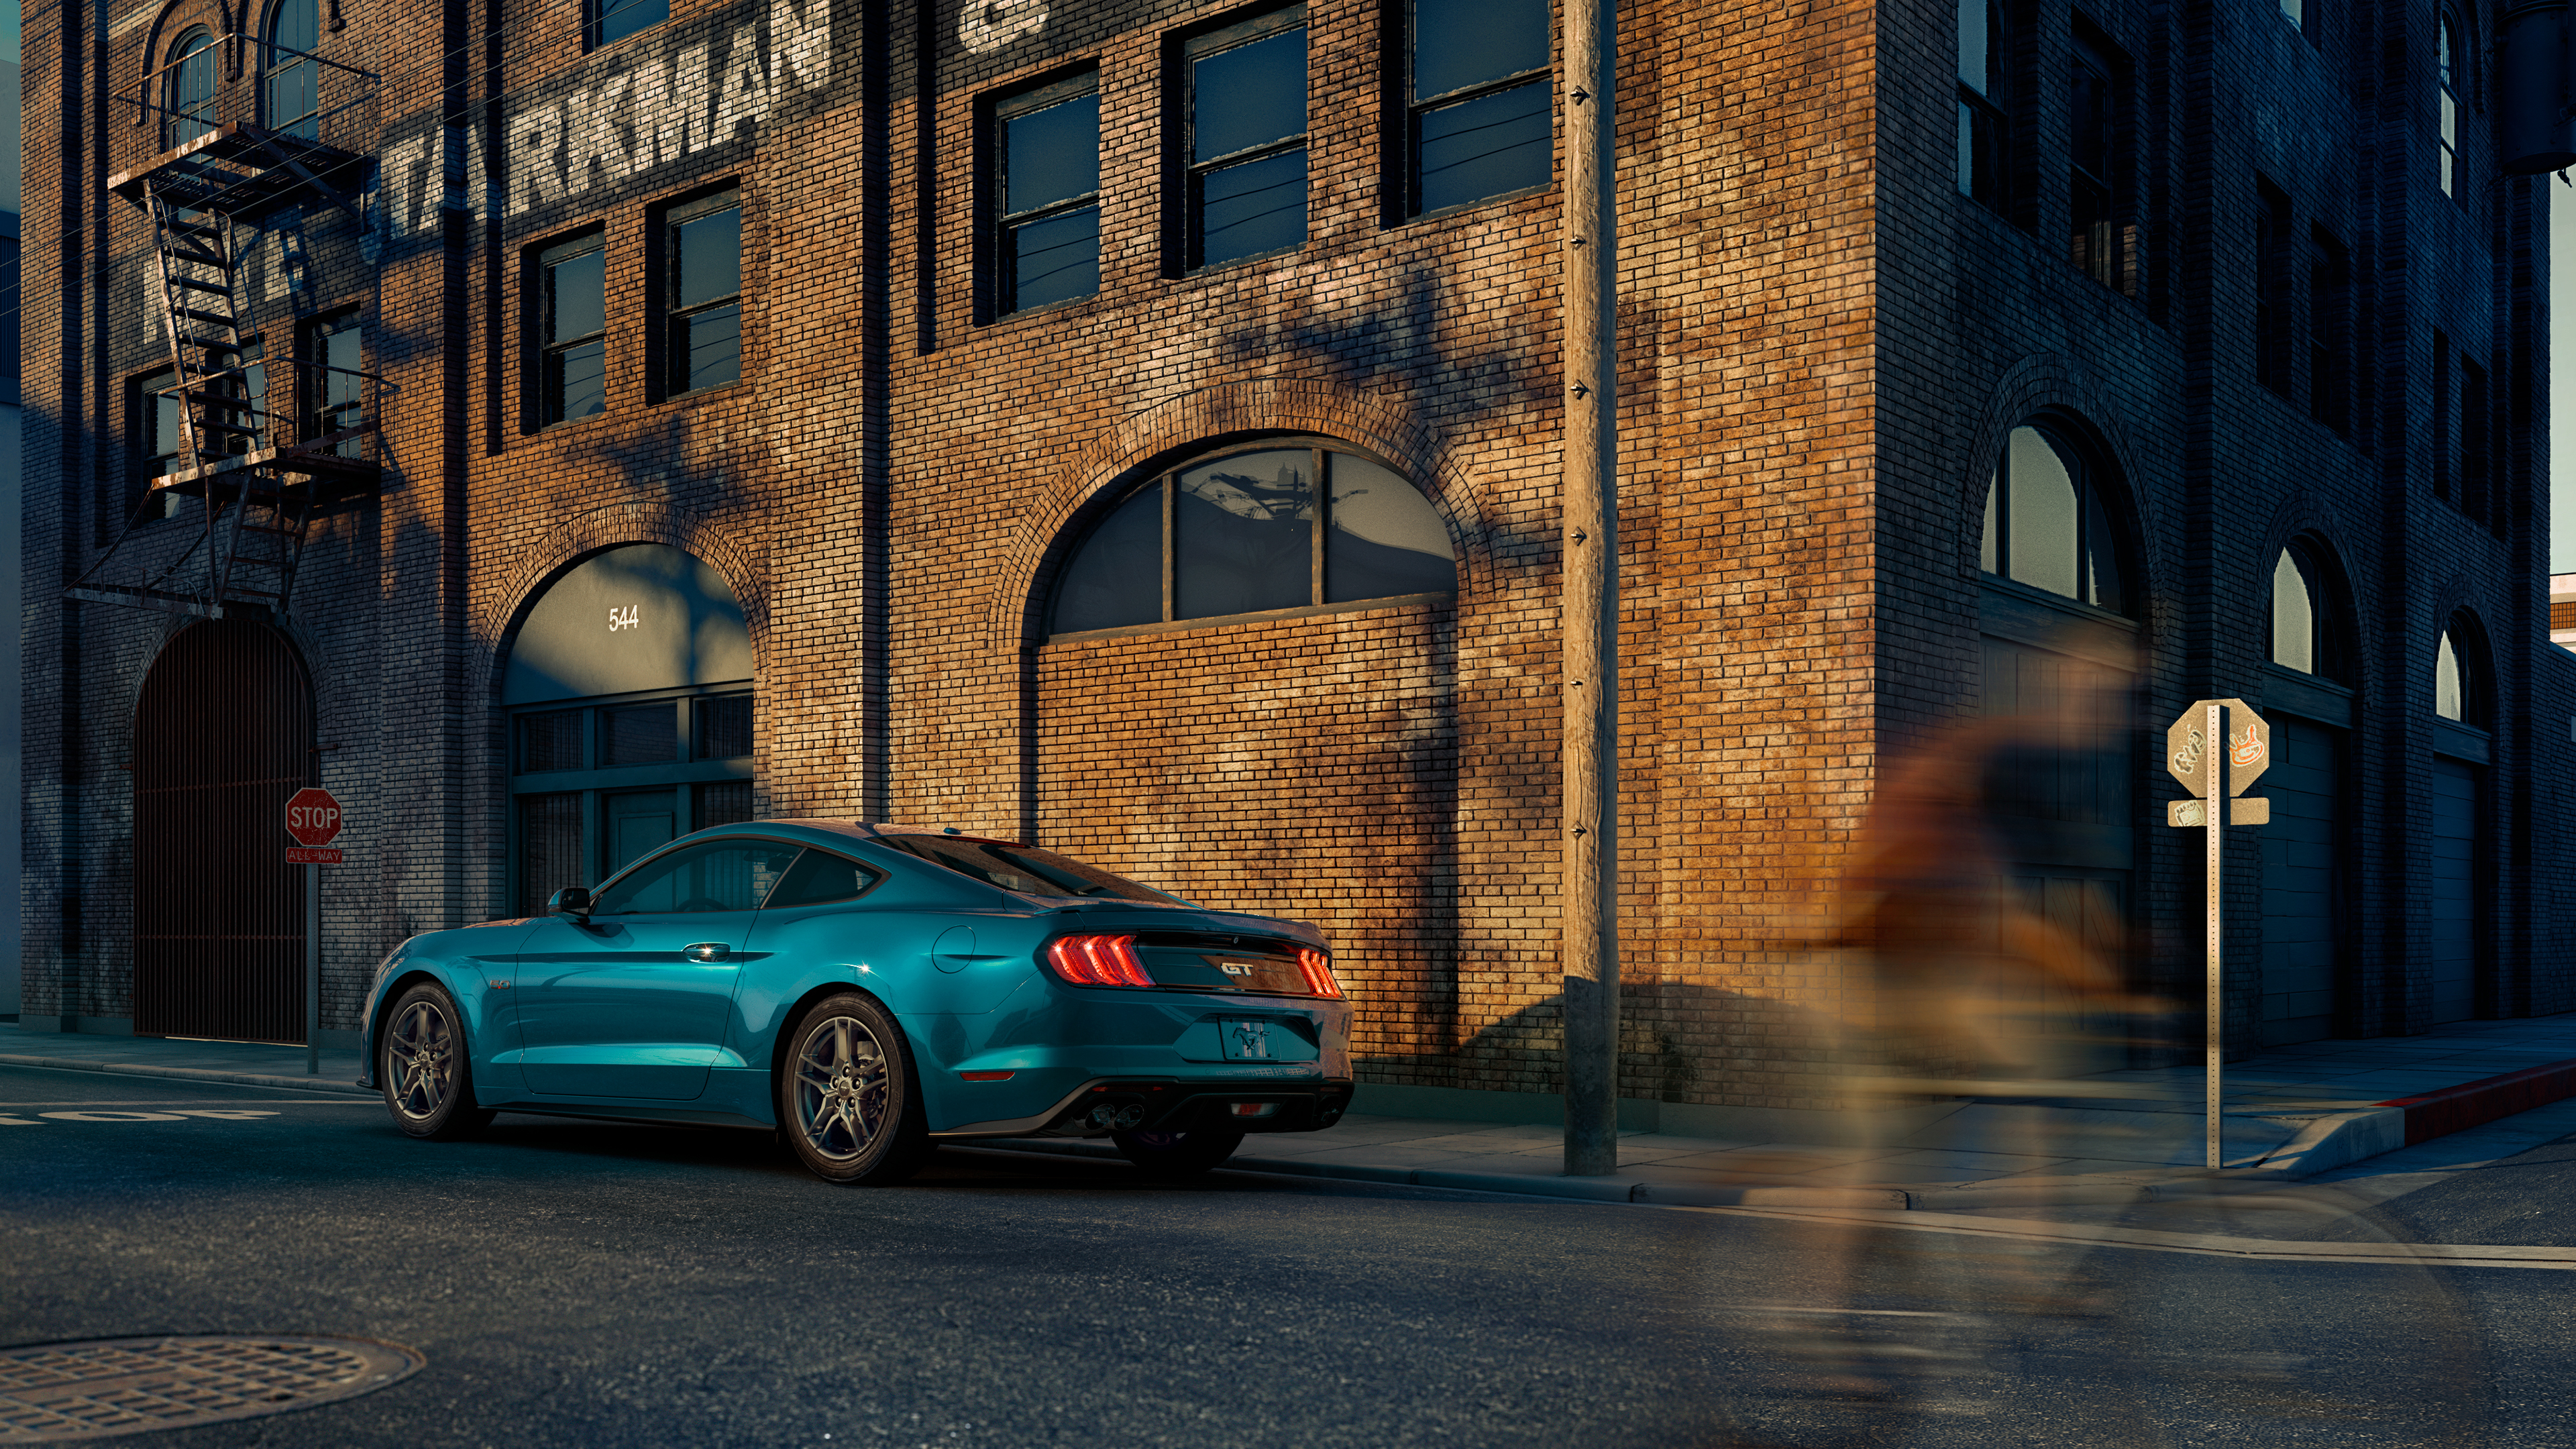 ford mustang gt 2019 4k 1547936904 - Ford Mustang Gt 2019 4k - hd-wallpapers, ford wallpapers, ford mustang wallpapers, cars wallpapers, behance wallpapers, 4k-wallpapers, 2019 cars wallpapers